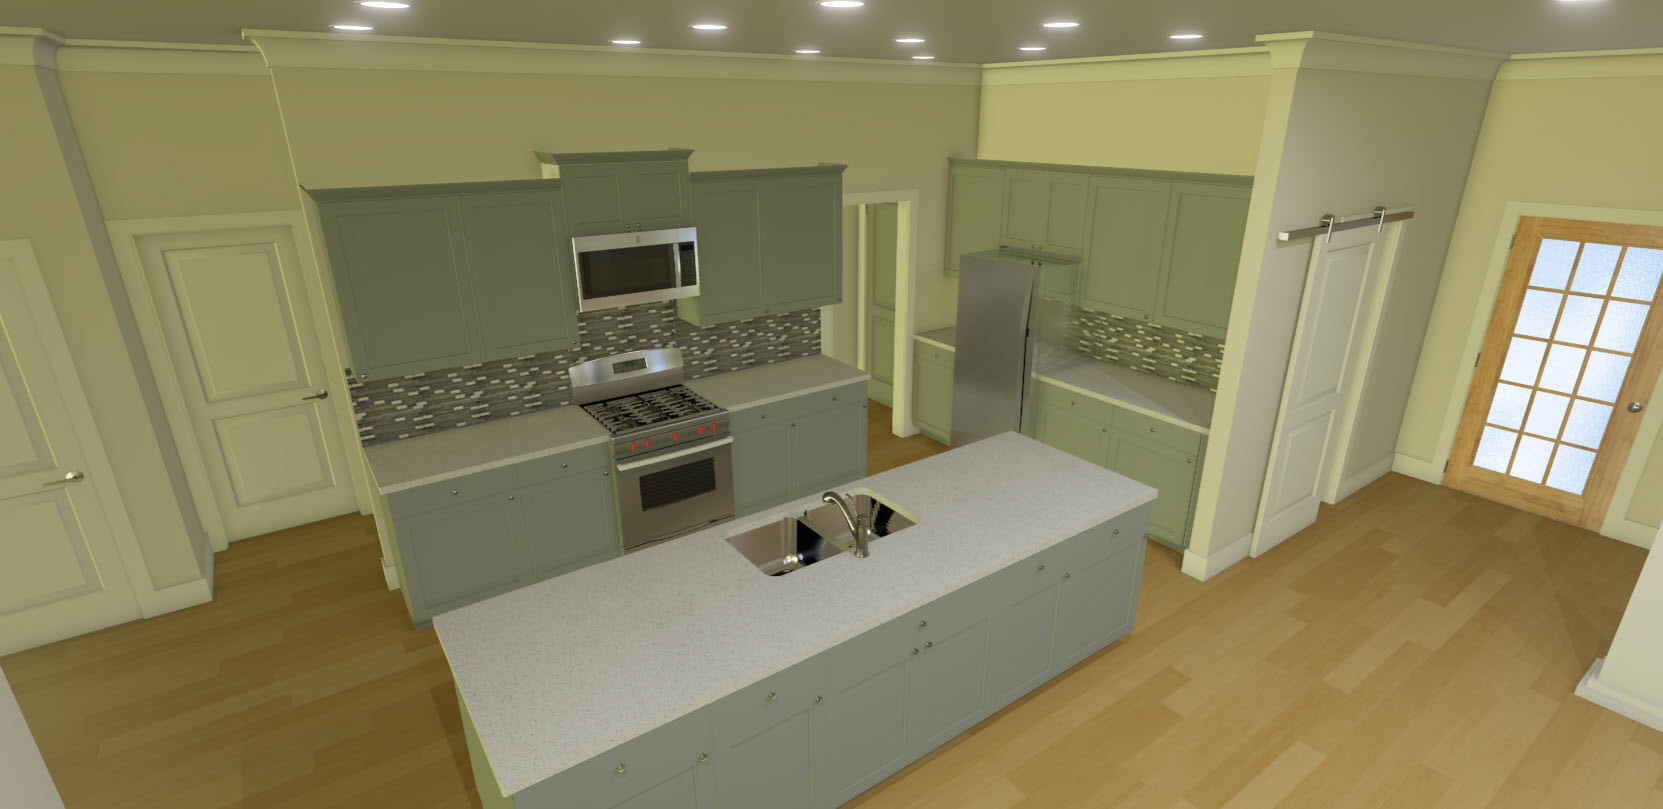 Interior 3d - Website Image - 3.jpg